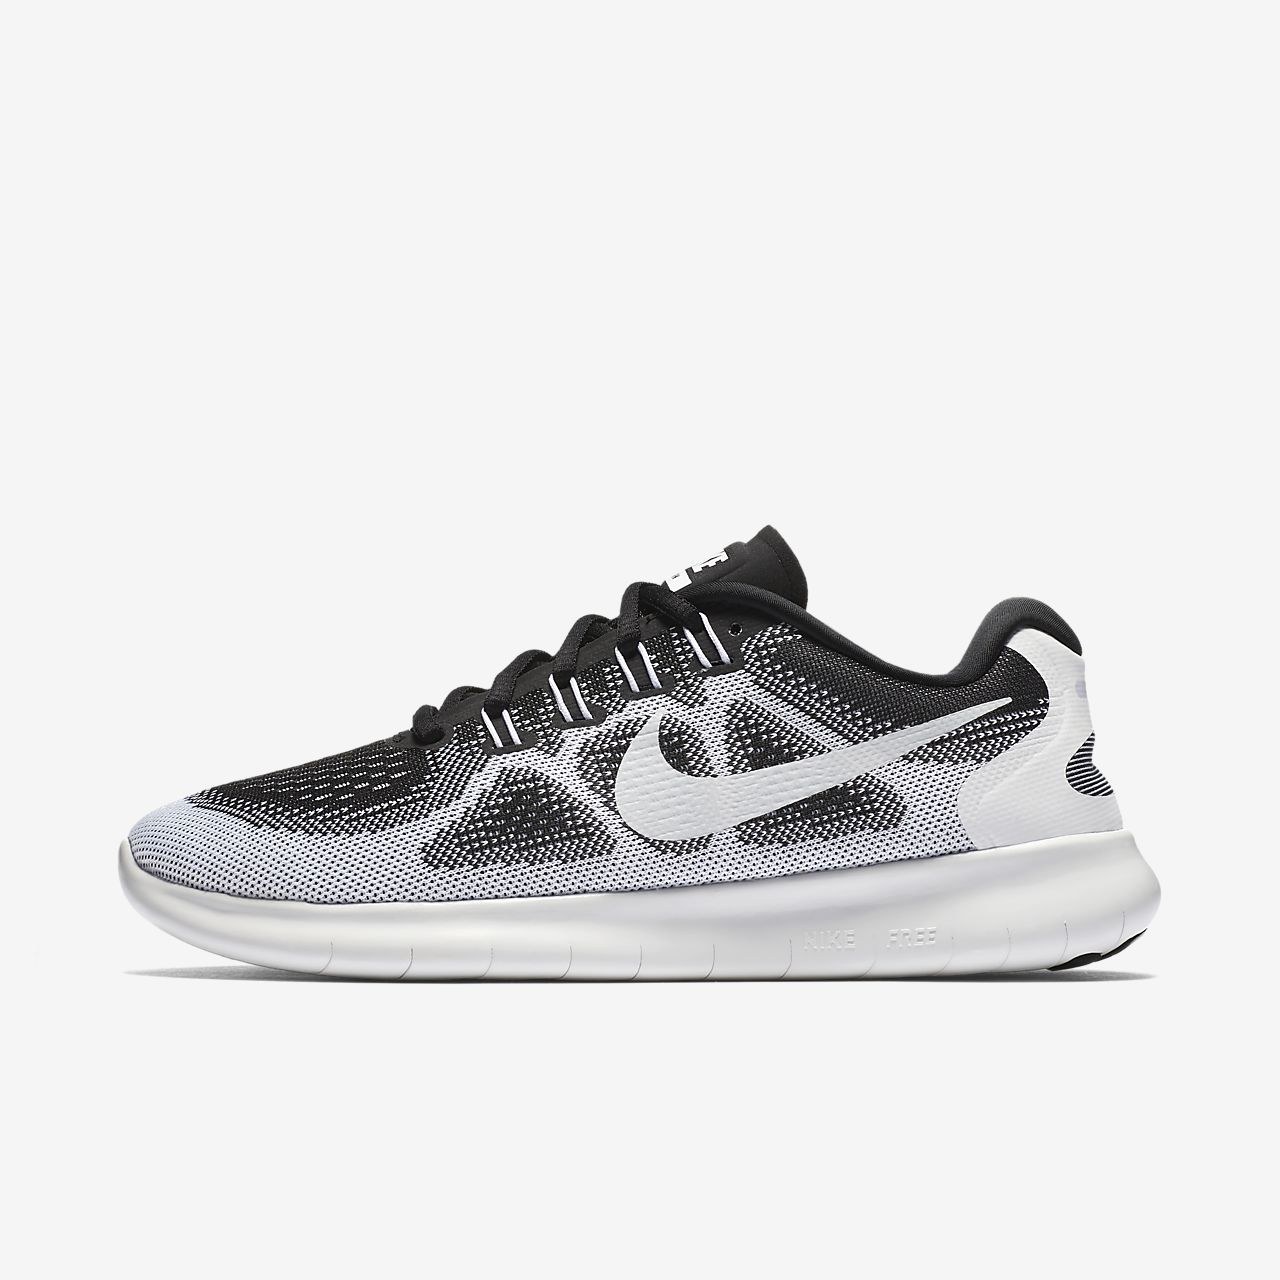 Nike sneakers limited edition 2017